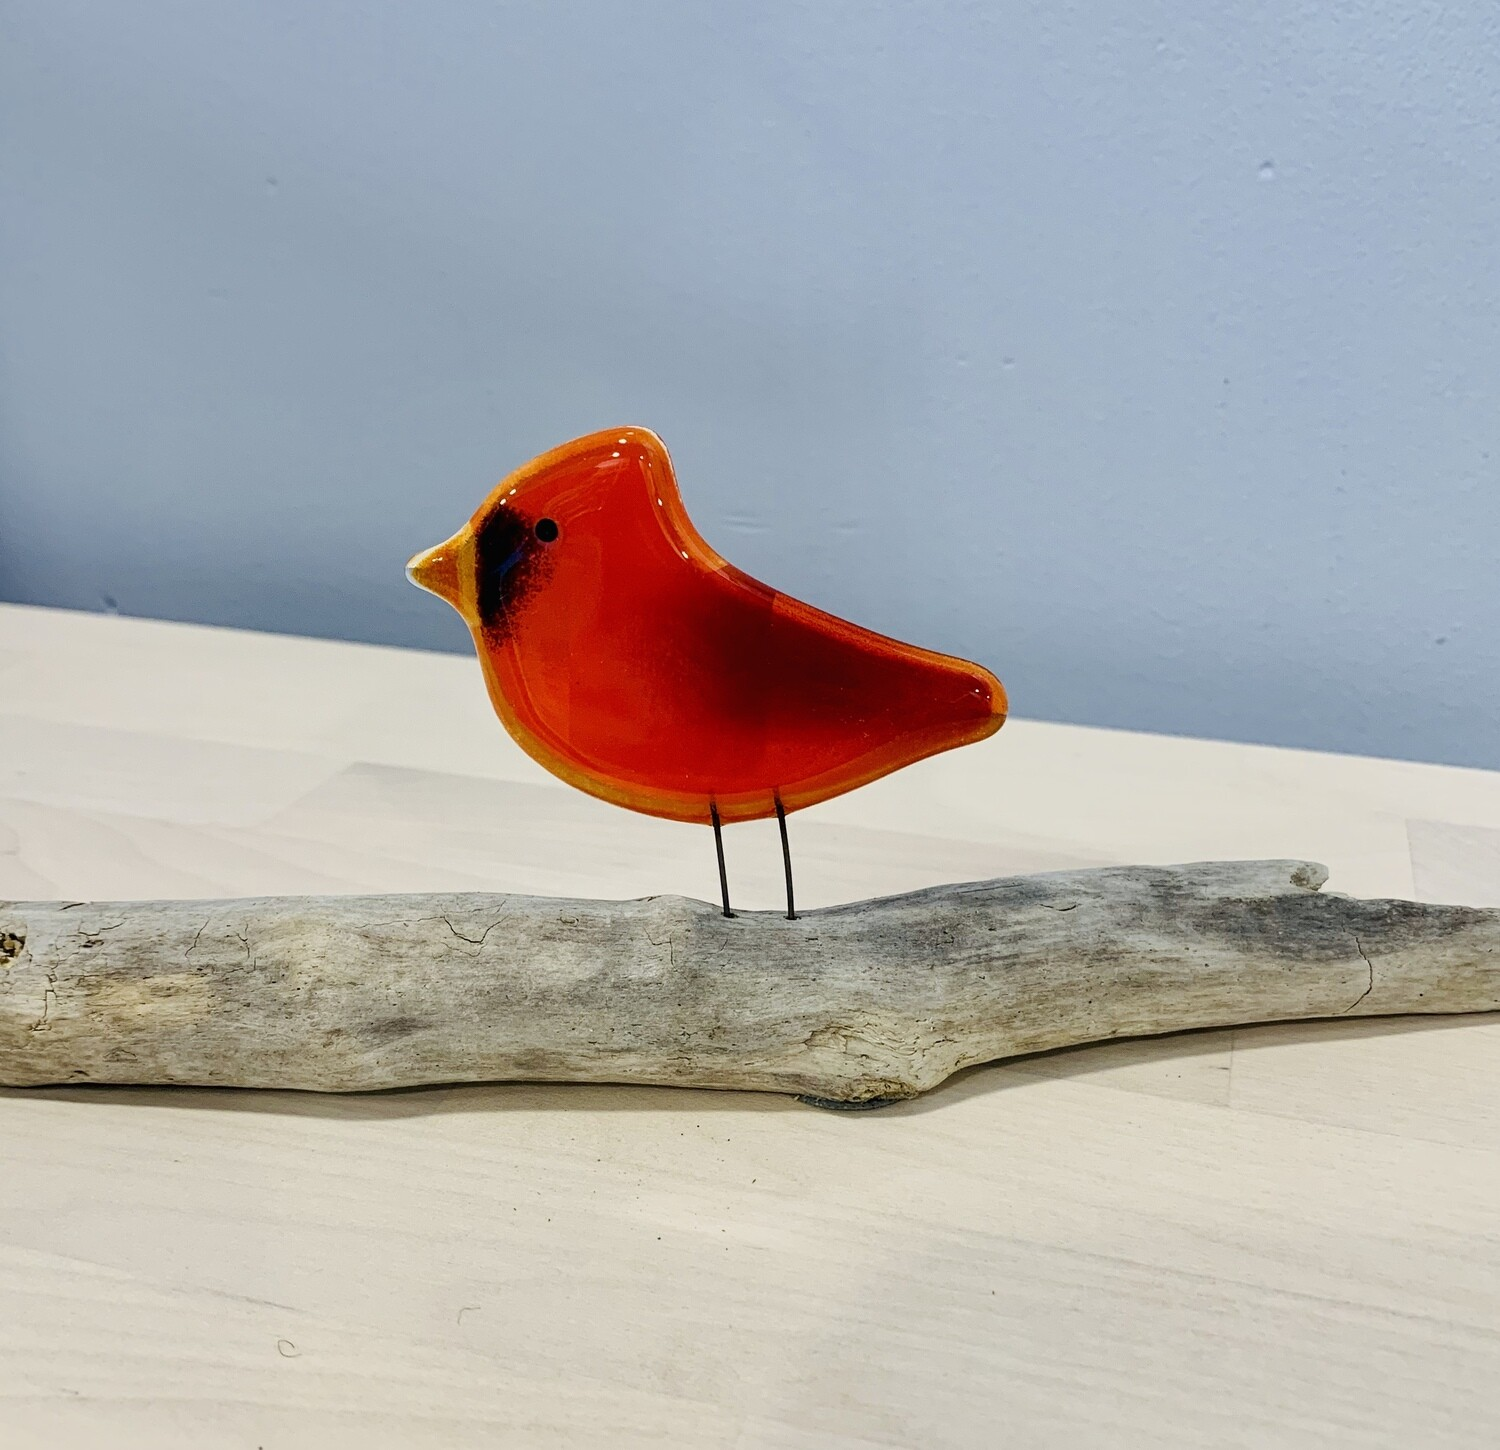 Glass Cardinal (Male) on Perch